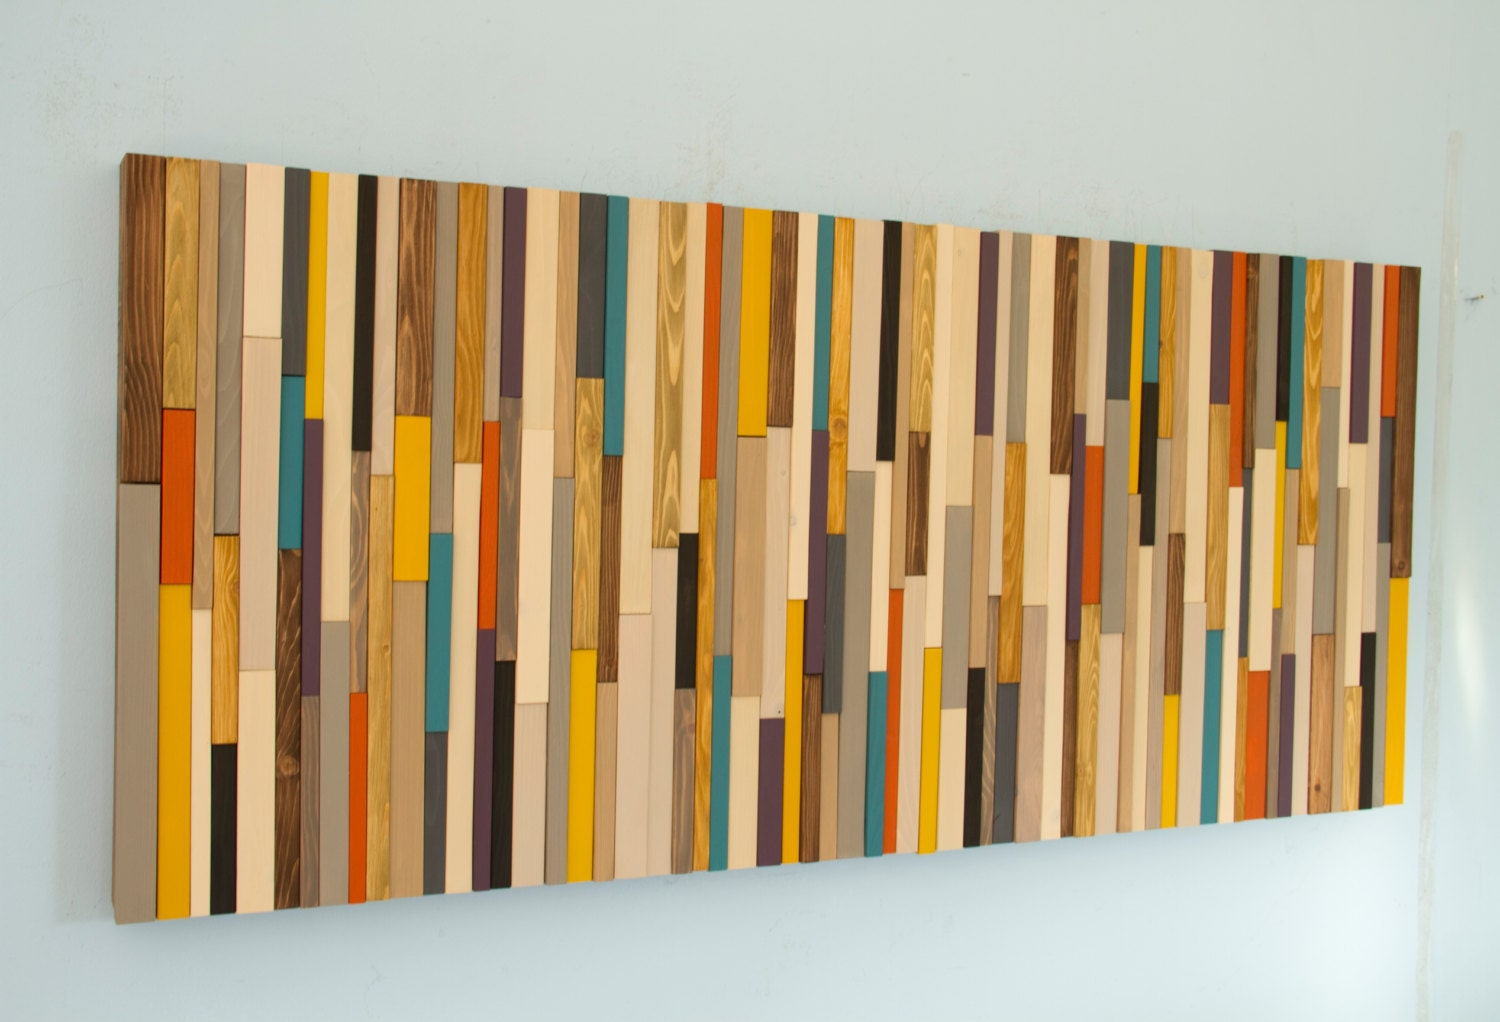 Wooden Wall Art For Sale Mid Century Wall Art Reclaimed Wood Art Sculpture Painted